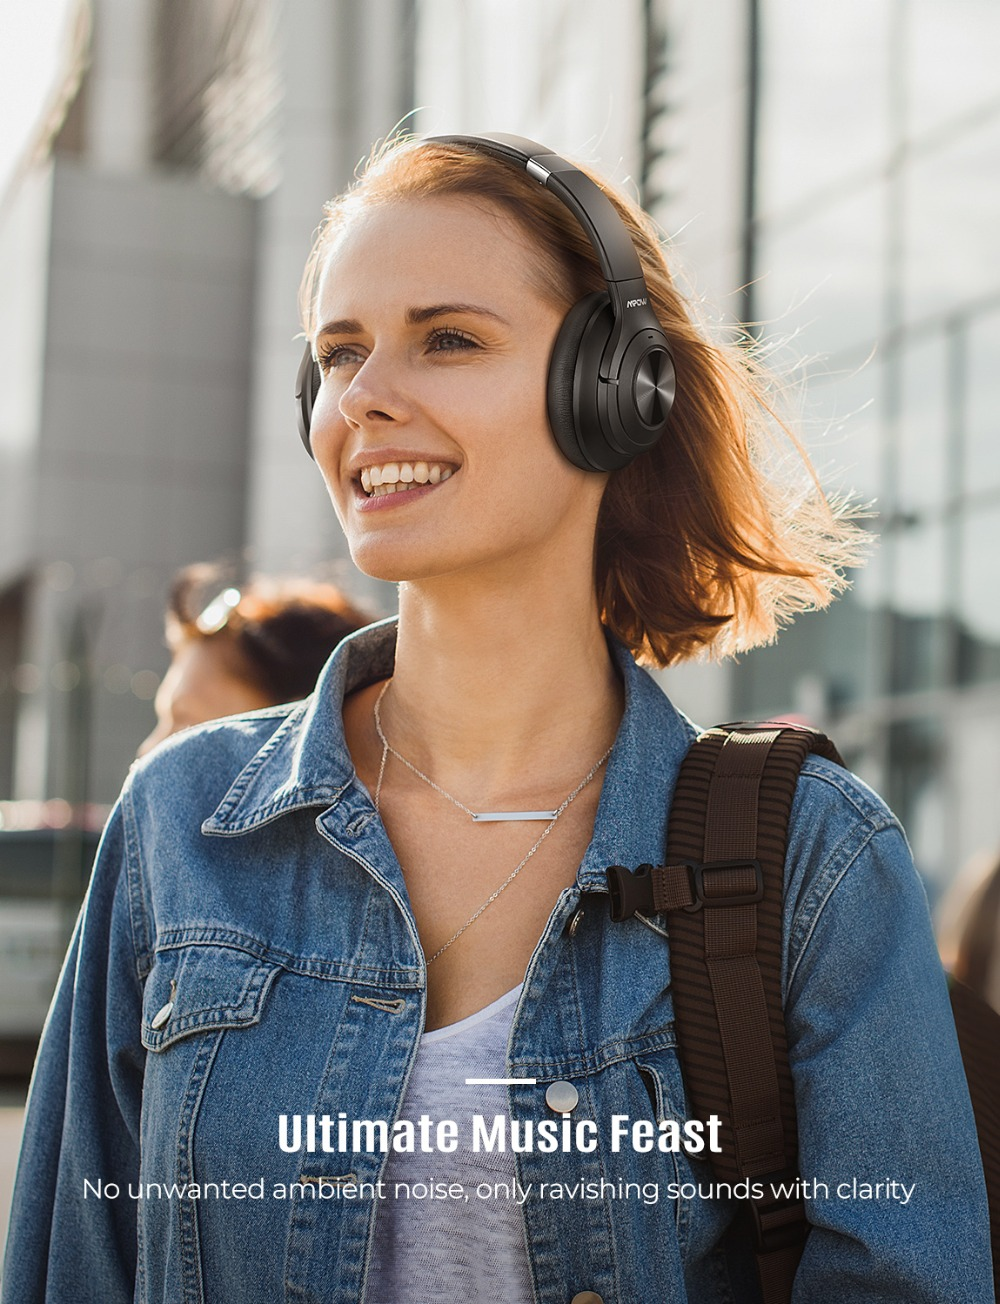 Mpow H21 Wireless Headphone Bluetooth 5.0 Noise Cancelling Headphone With 40 Hours Playtime CVC6.0 Mic Deep Bass For PC Phone (1)